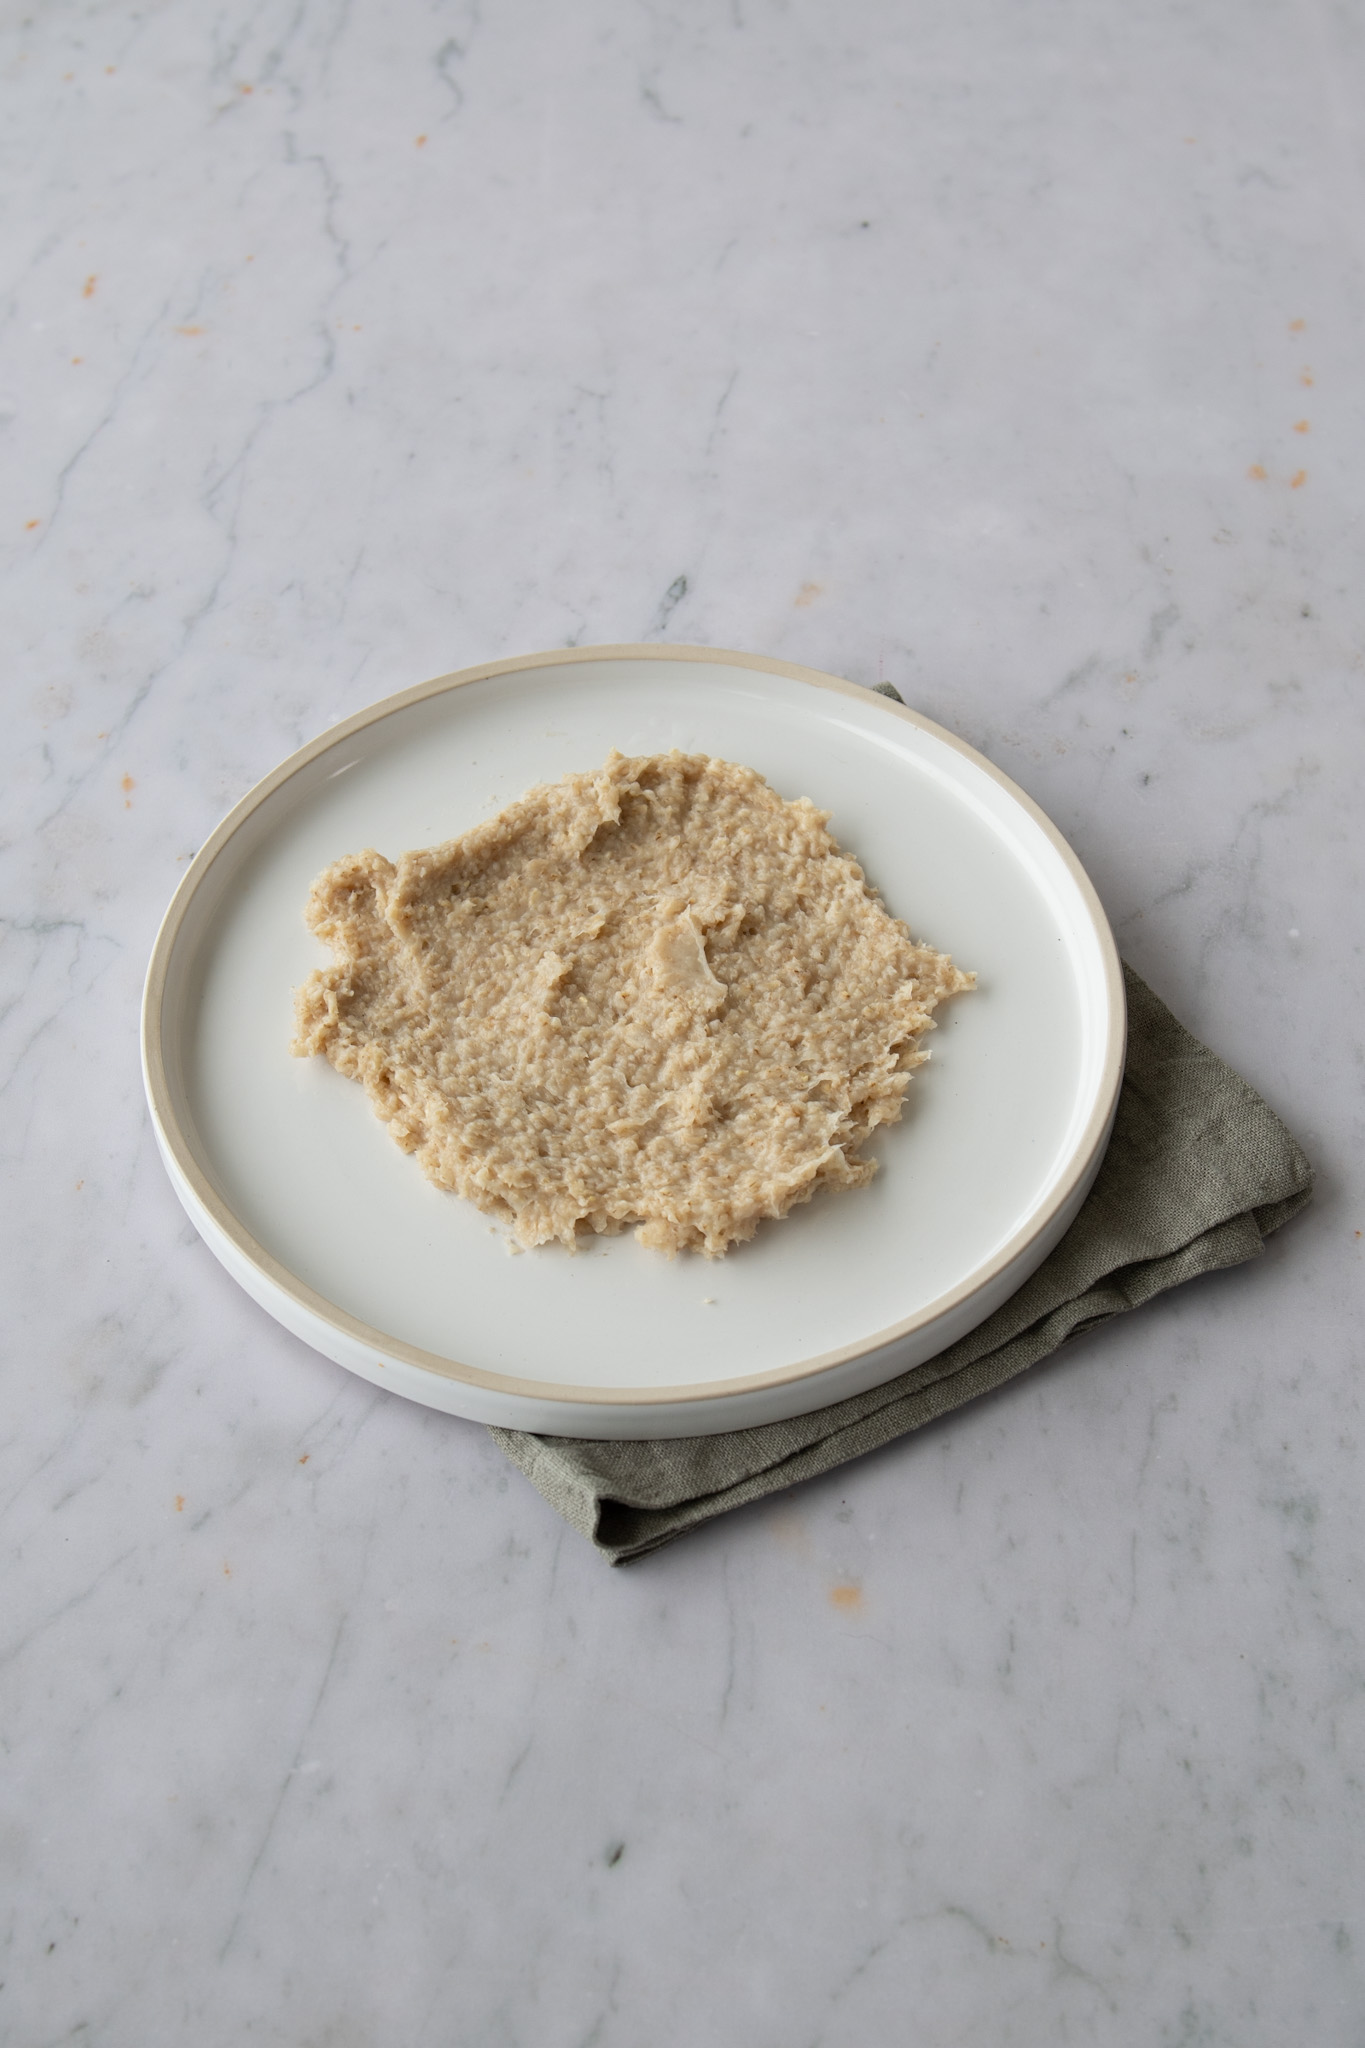 Oats cooked with honey